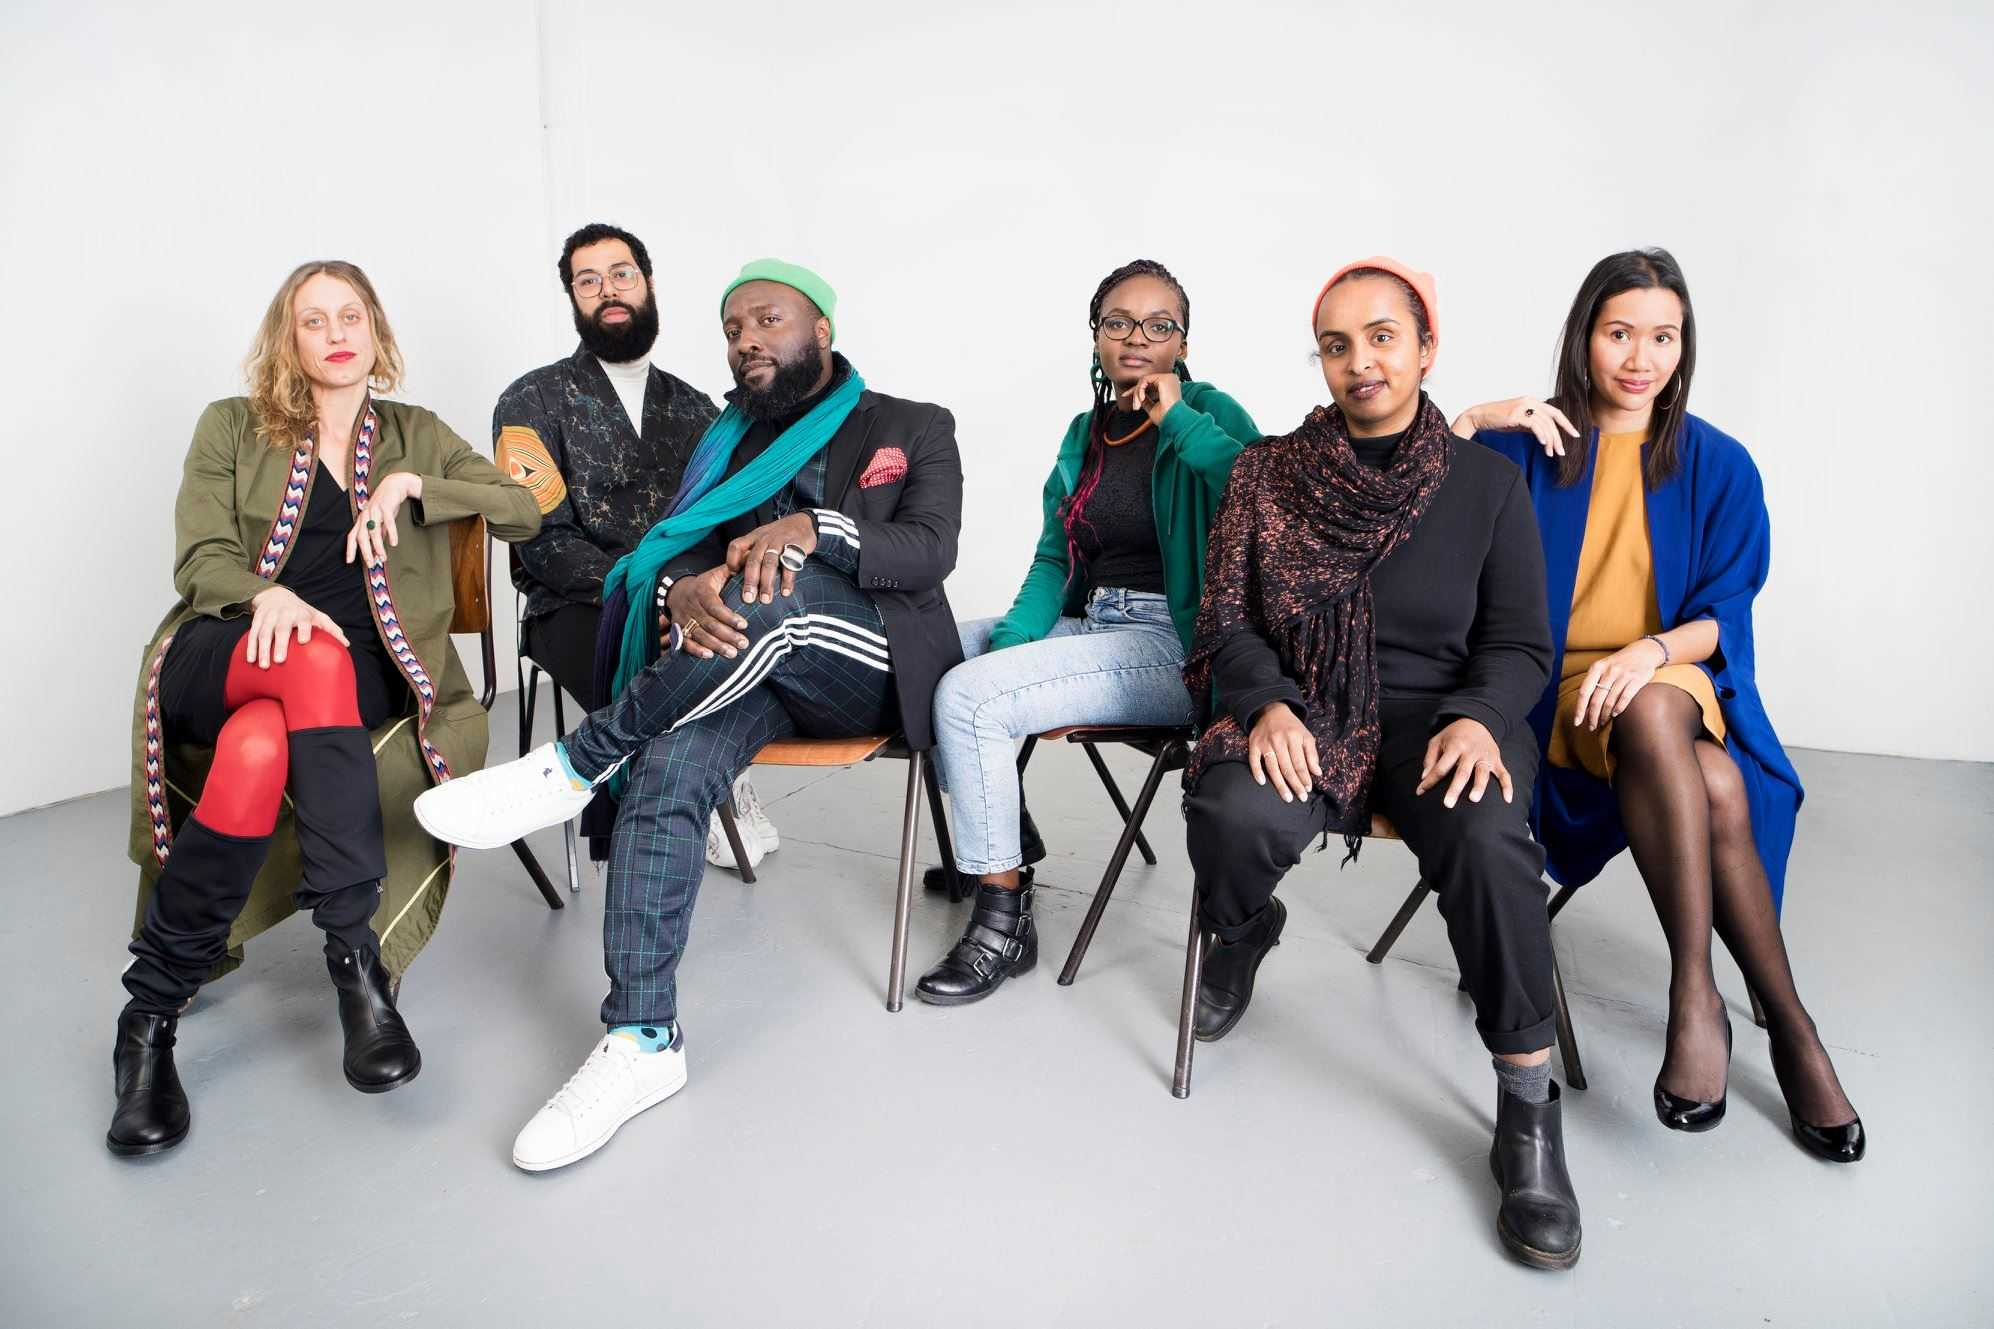 sonsbeek 20—24 curatorial team. From left to right: Antonia Alampi, Vincent van Velsen,  Bonaventure Soh Bejeng Ndikung, Aude Mgba, Amal Alhaag and Zippora Elders. Photo by Studio Julius Thissen